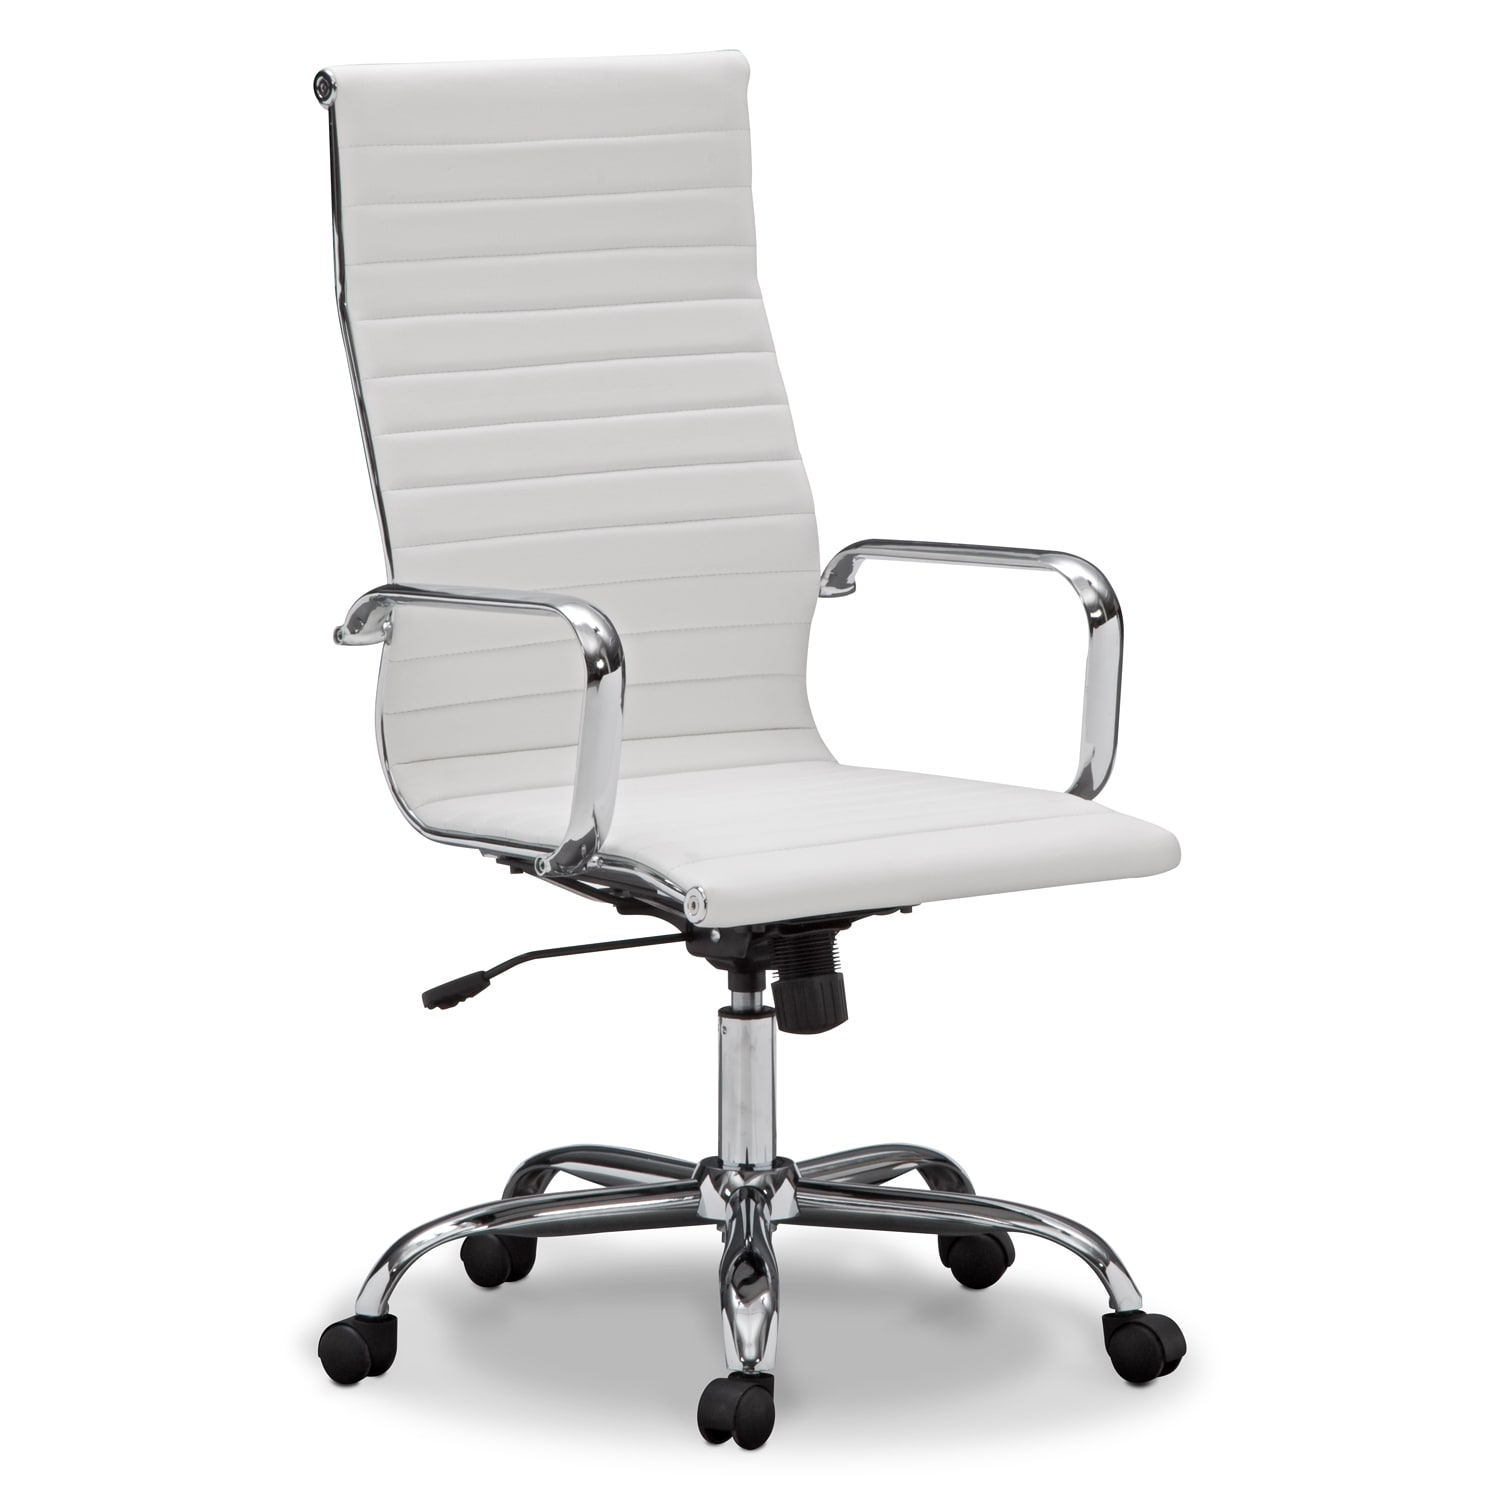 Home Office Desk Chair Furnishings For Every Room Online And Store Furniture